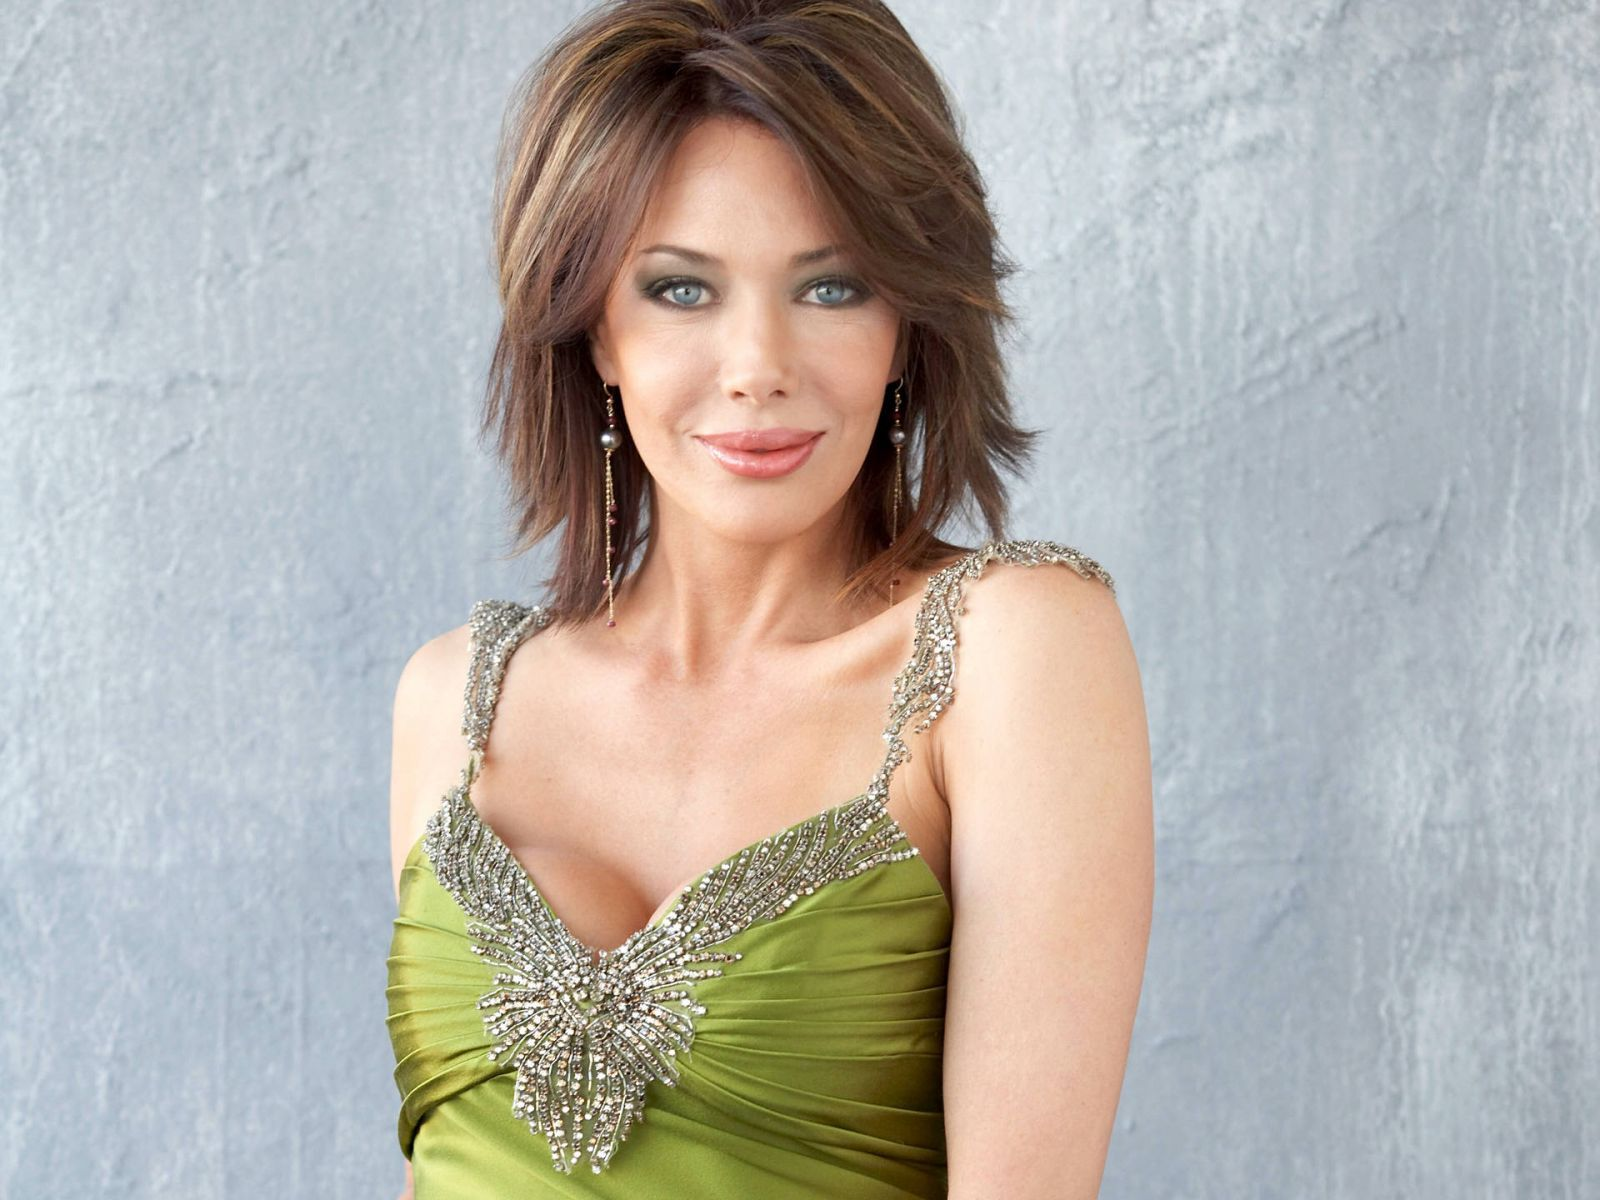 hunter tylo before and after